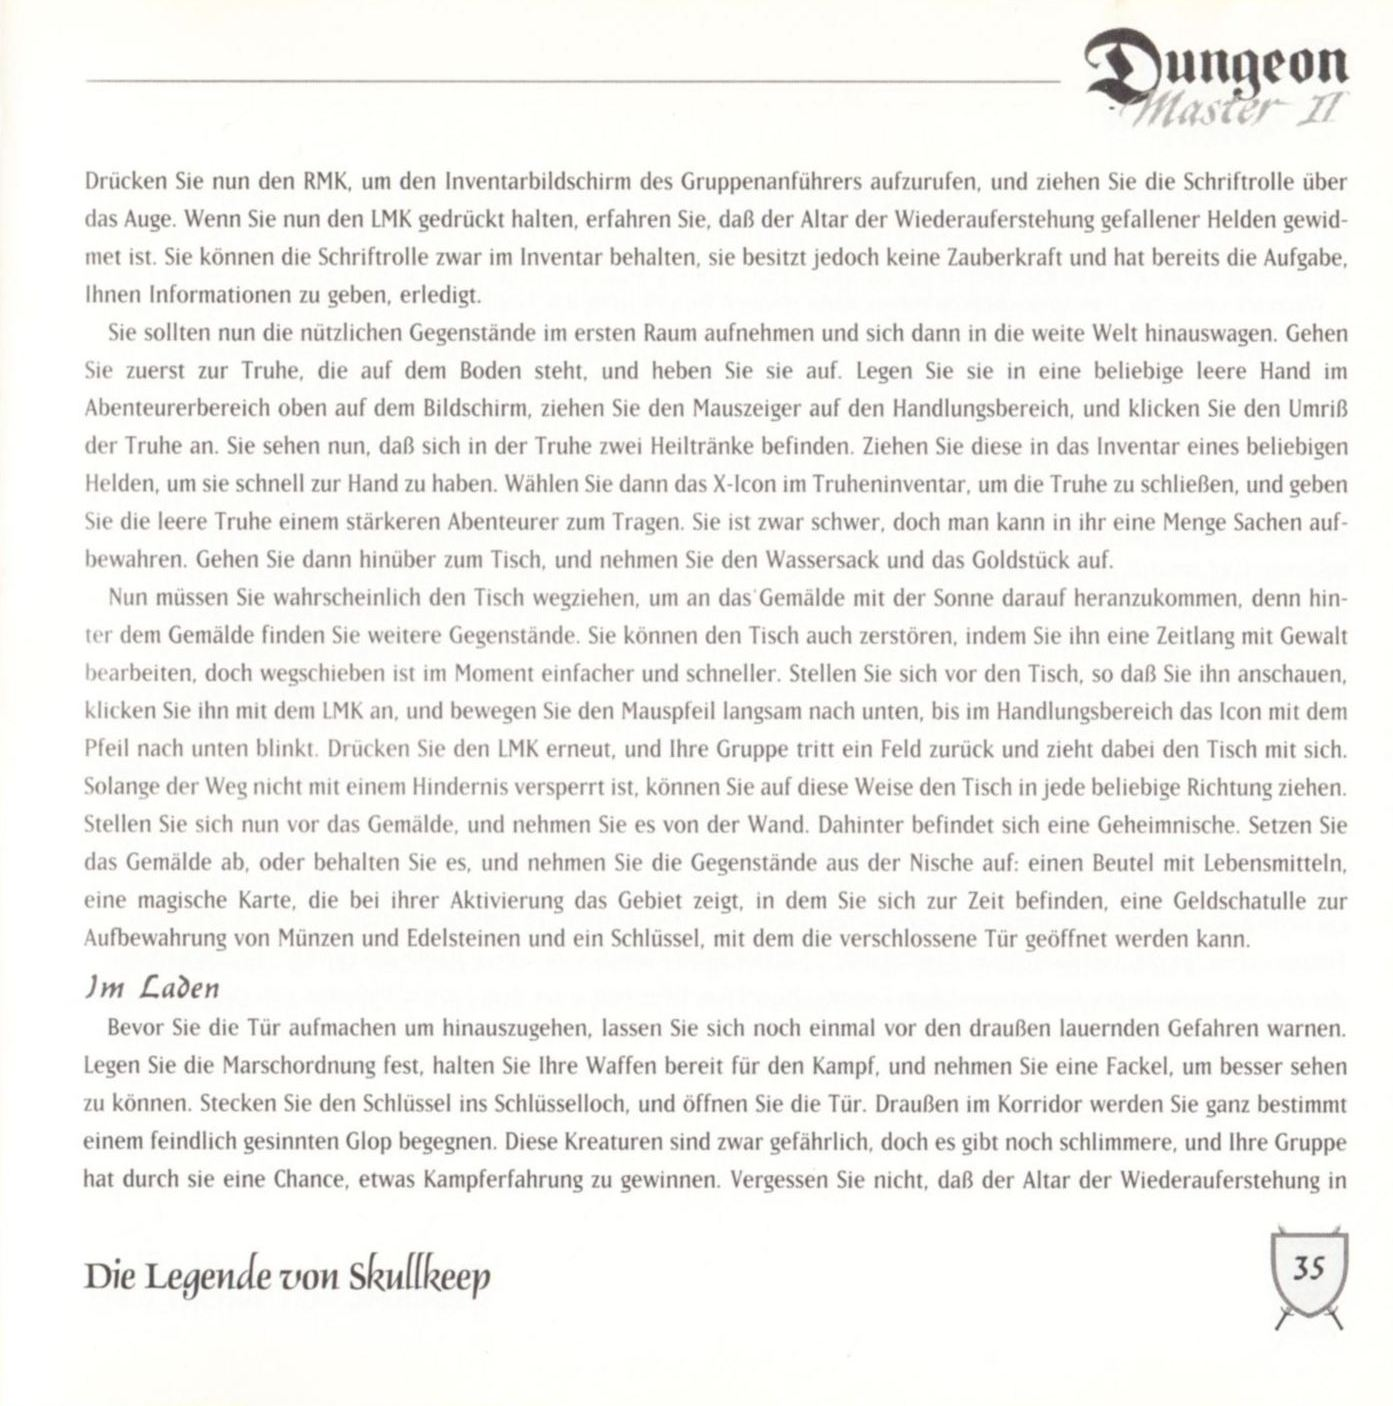 Game - Dungeon Master II - DE - PC - Blackmarket With Booklet - Booklet - Page 037 - Scan